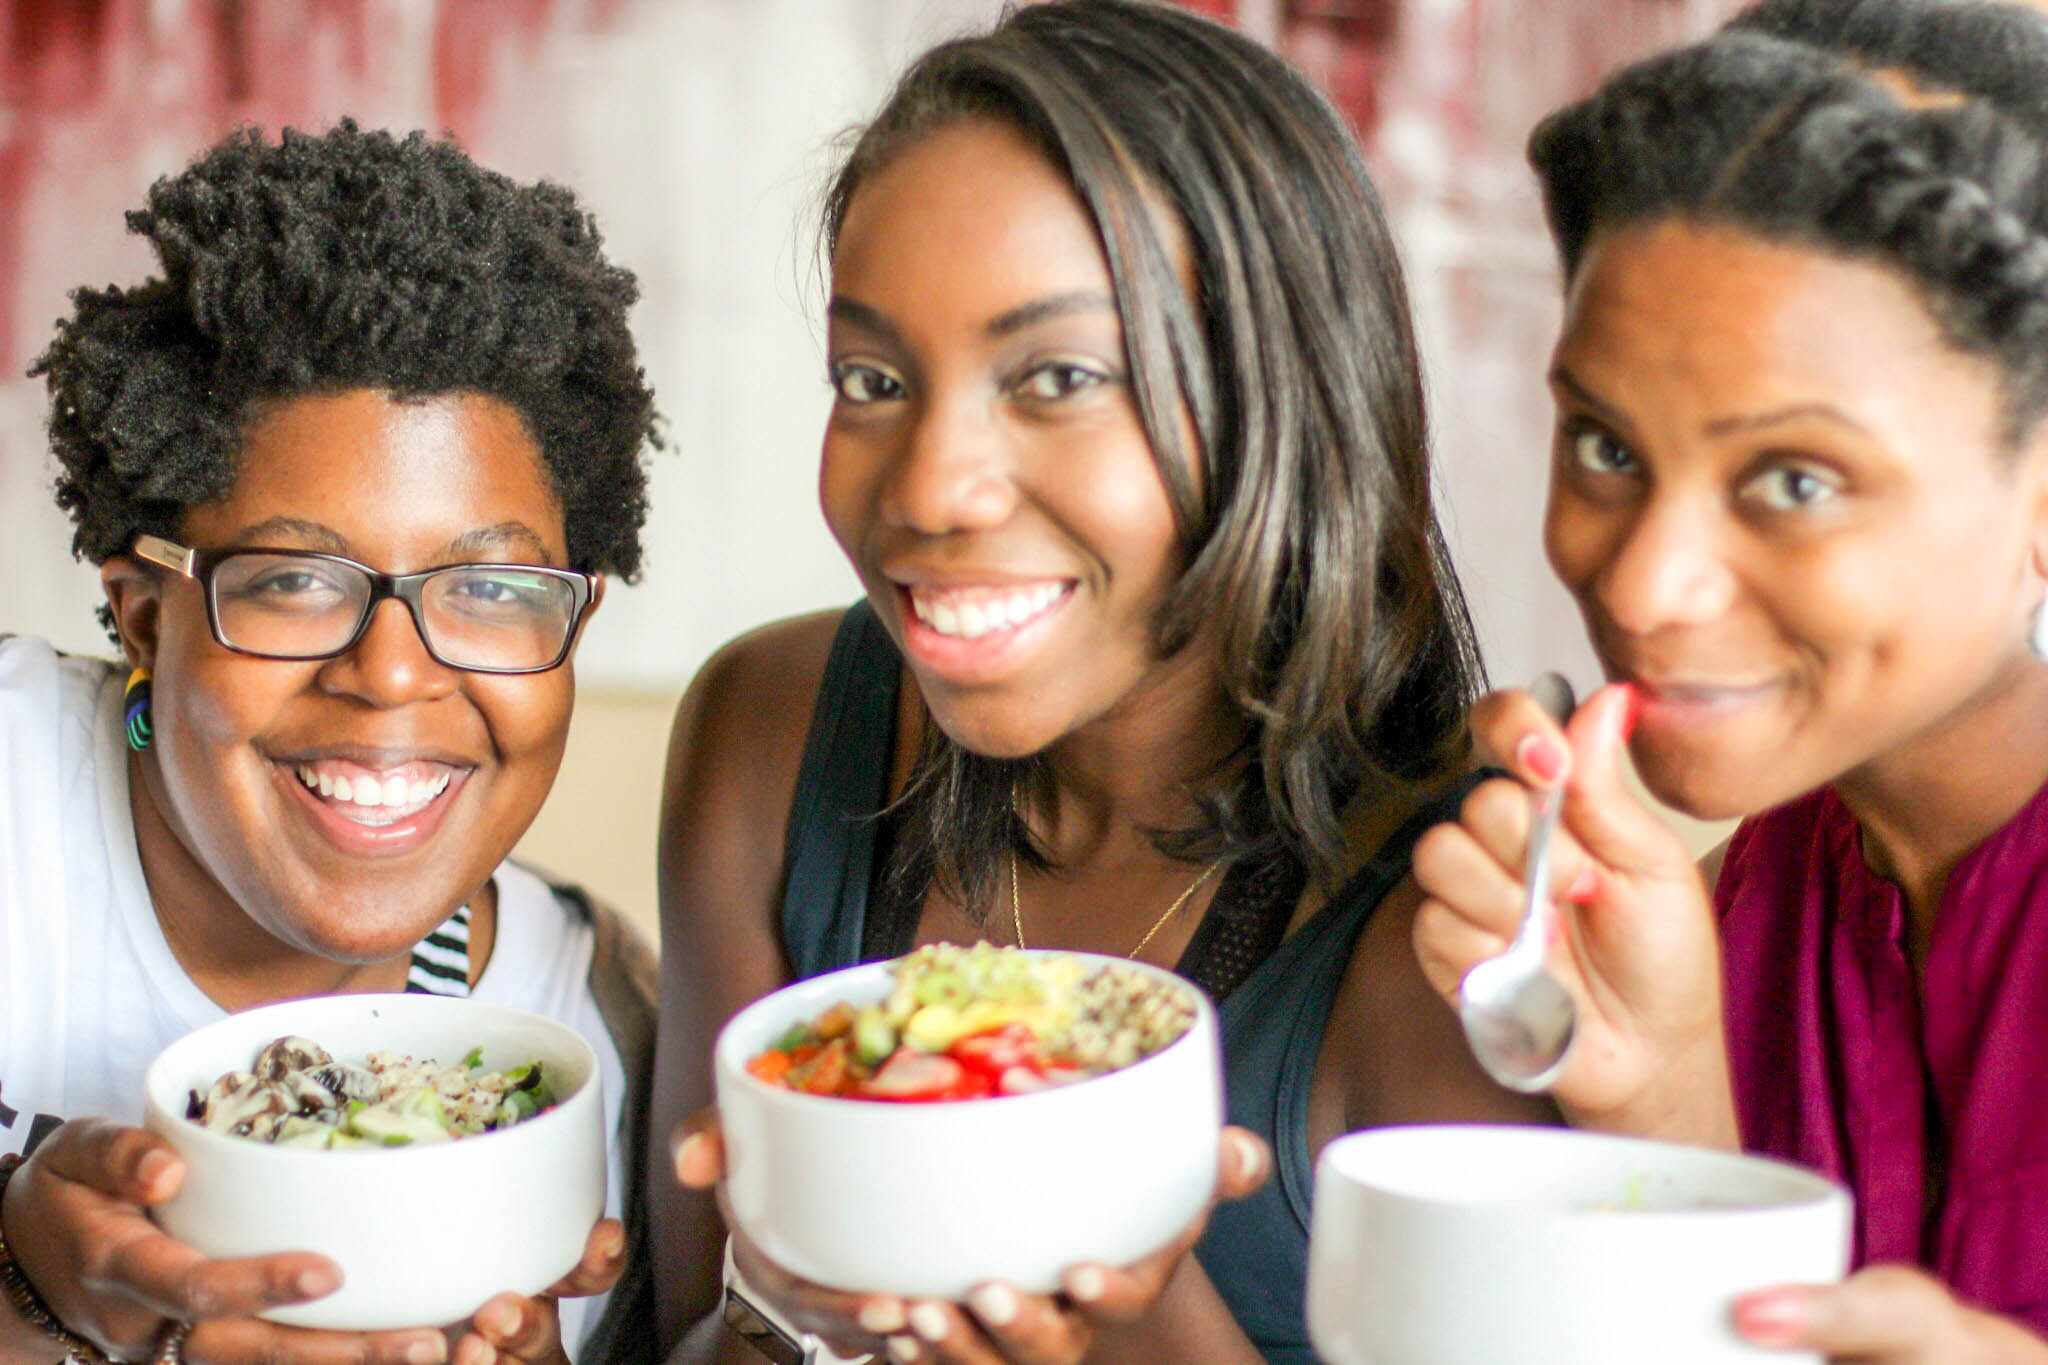 5 Habits To Help You Form Healthy Relationship with Food